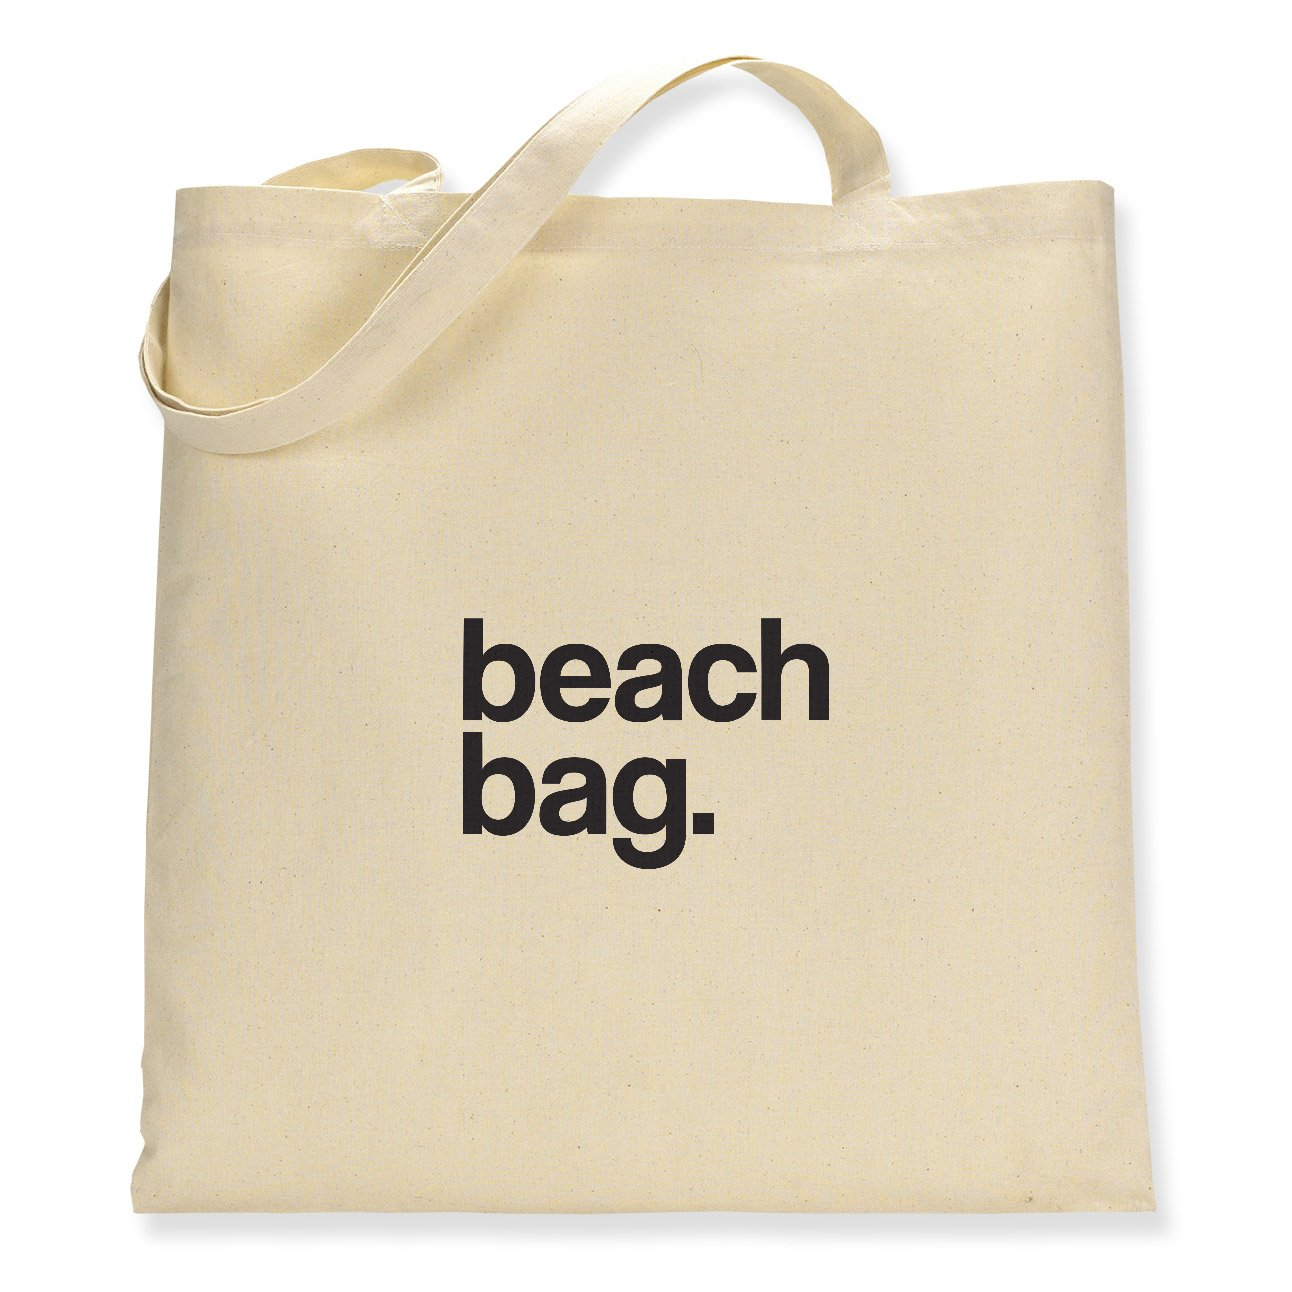 2337efe6204 Printed Beach Bag - Canvas Tote Bag - Double Sided  Amazon.co.uk  Shoes    Bags